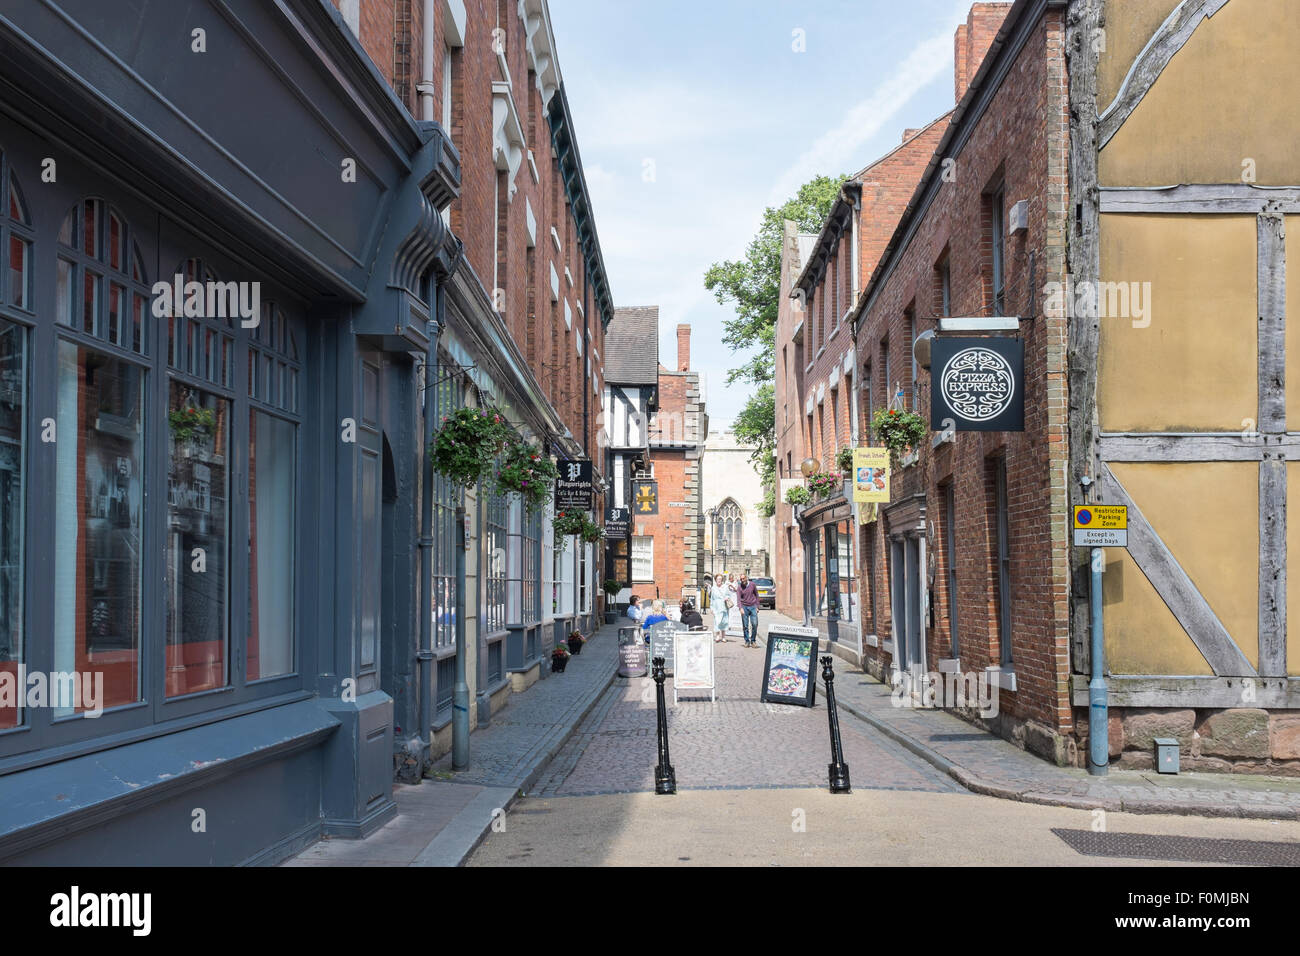 Hay Lane in the centre of Coventry - Stock Image